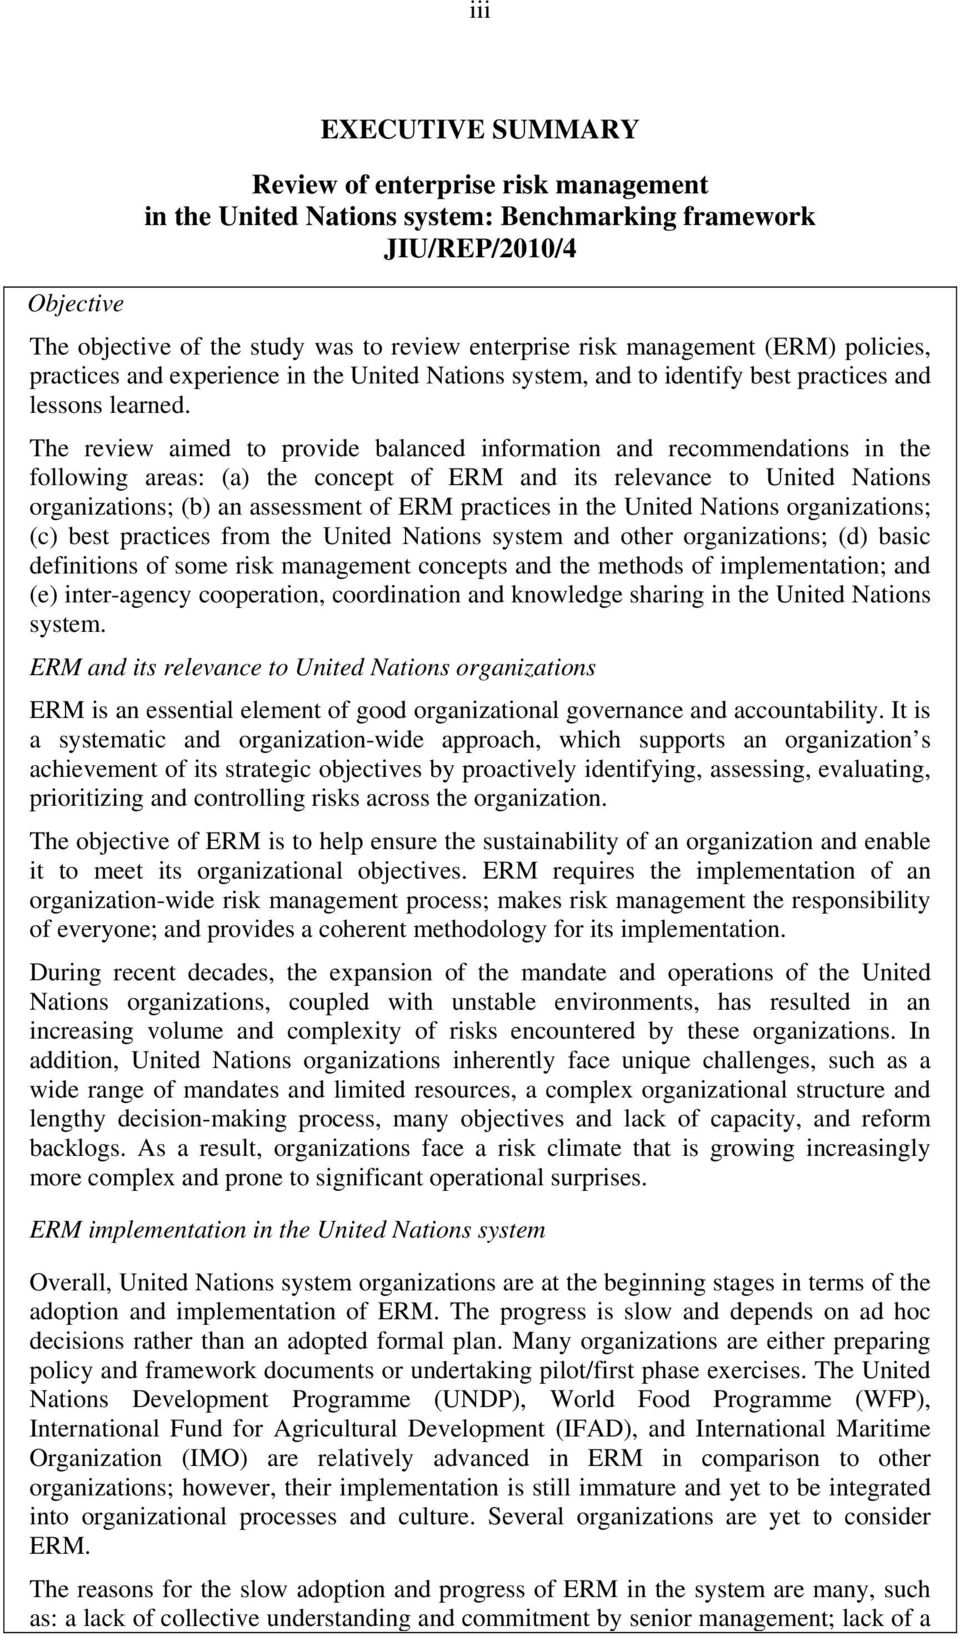 The review aimed to provide balanced information and recommendations in the following areas: (a) the concept of ERM and its relevance to United Nations organizations; (b) an assessment of ERM